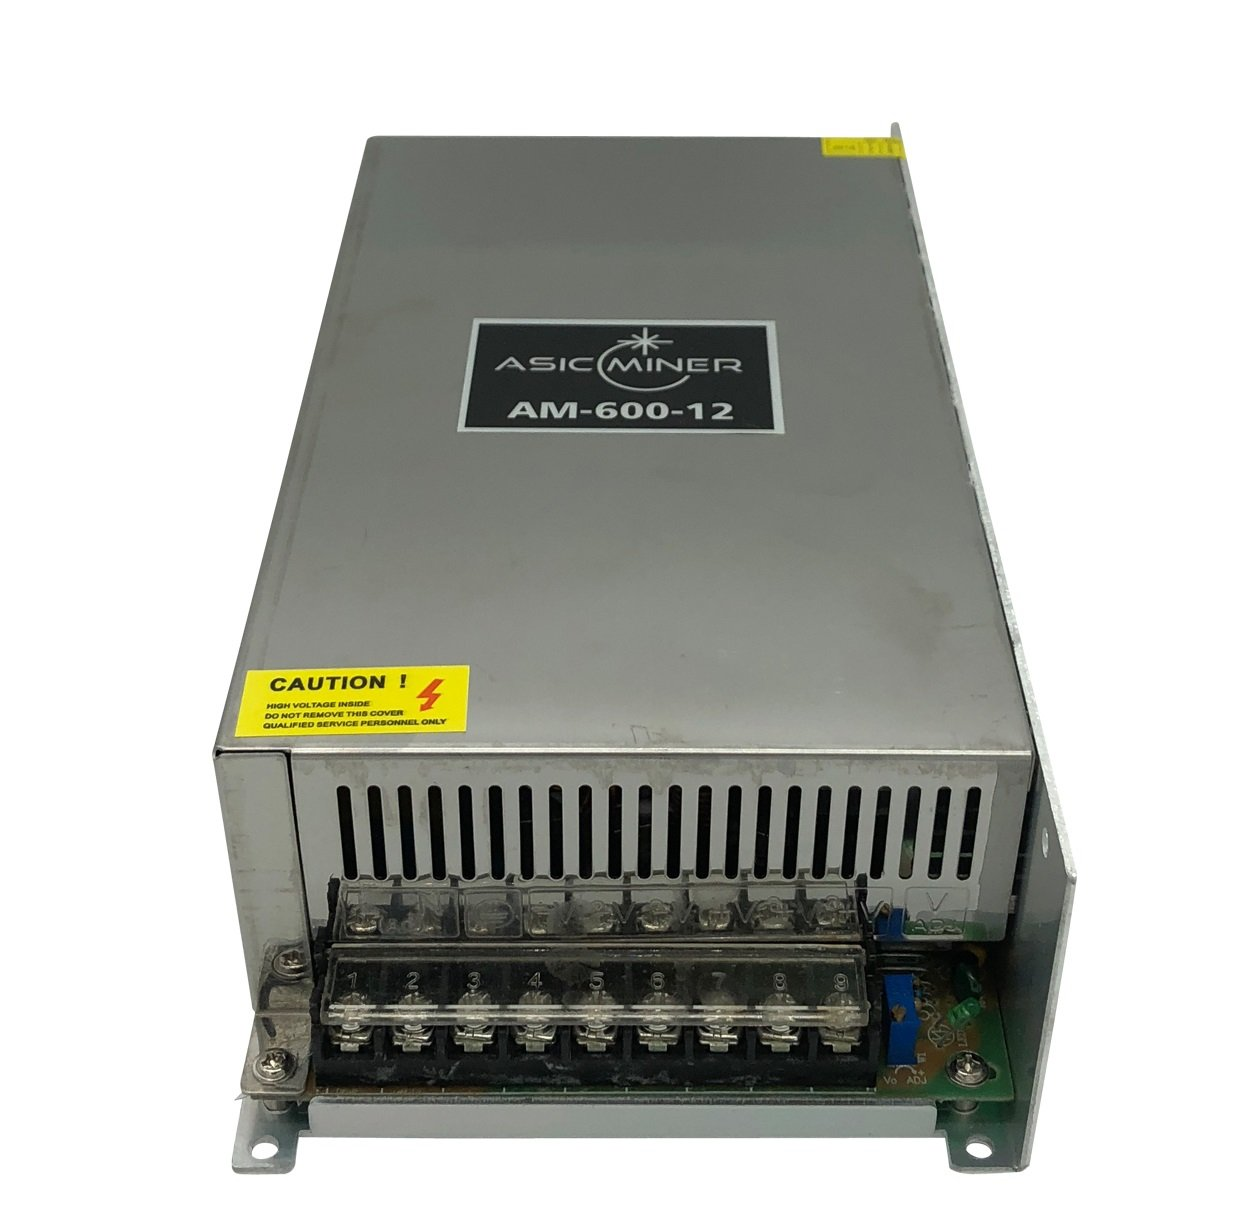 Asicminer 12V 50A DC Power Supply 600w for CCTV, Radio, LED, Computer Project